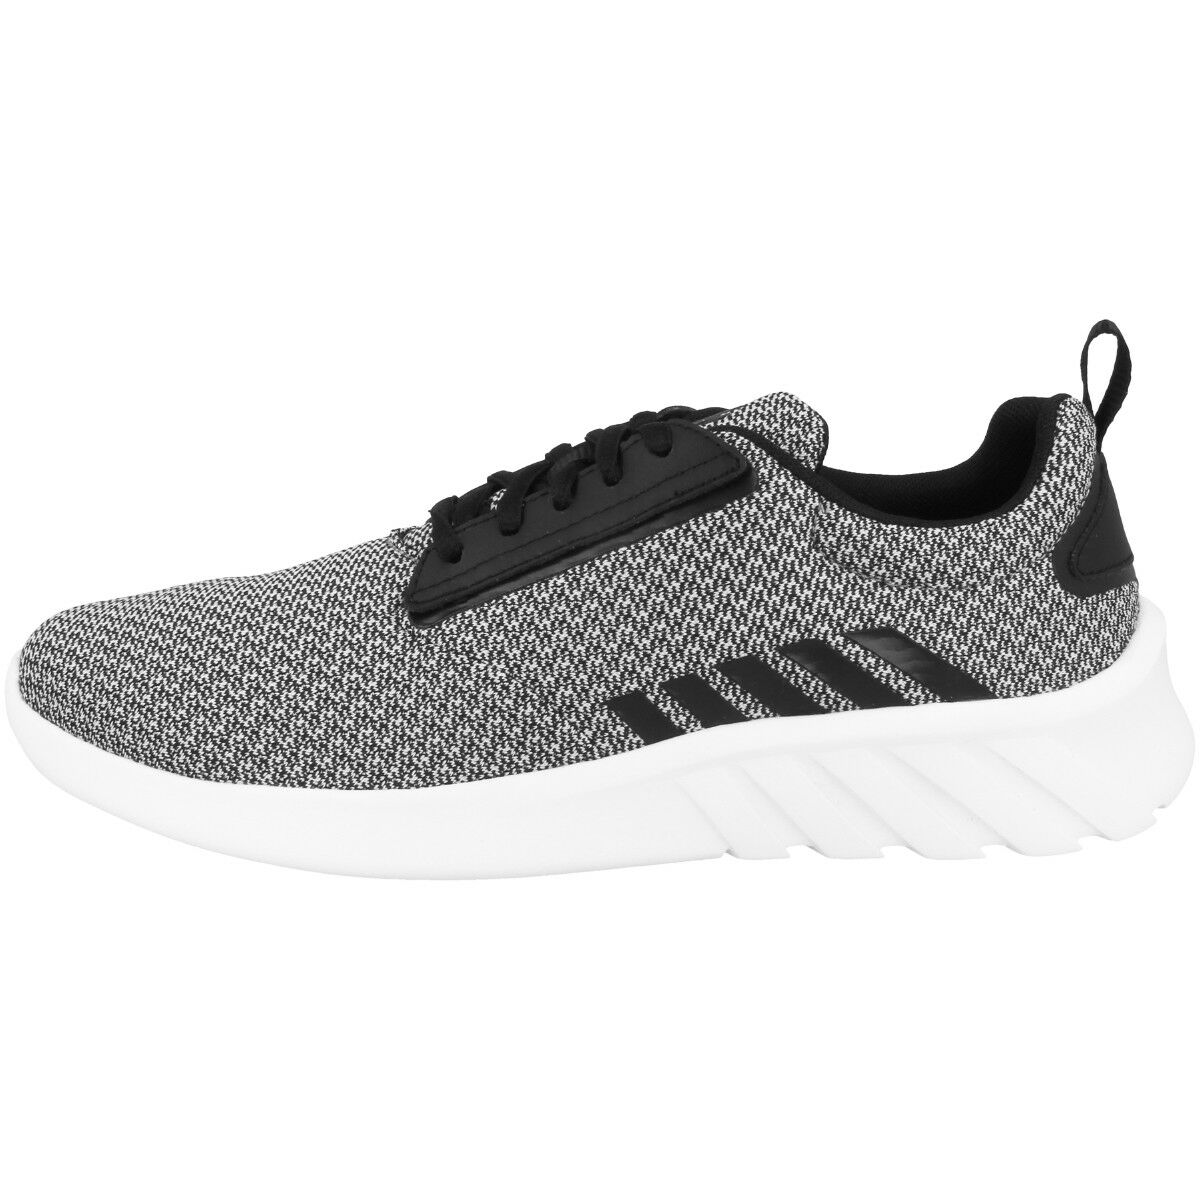 K-swiss femmes chaussures ladies aeronaut sport casual chaussures trainers high rise